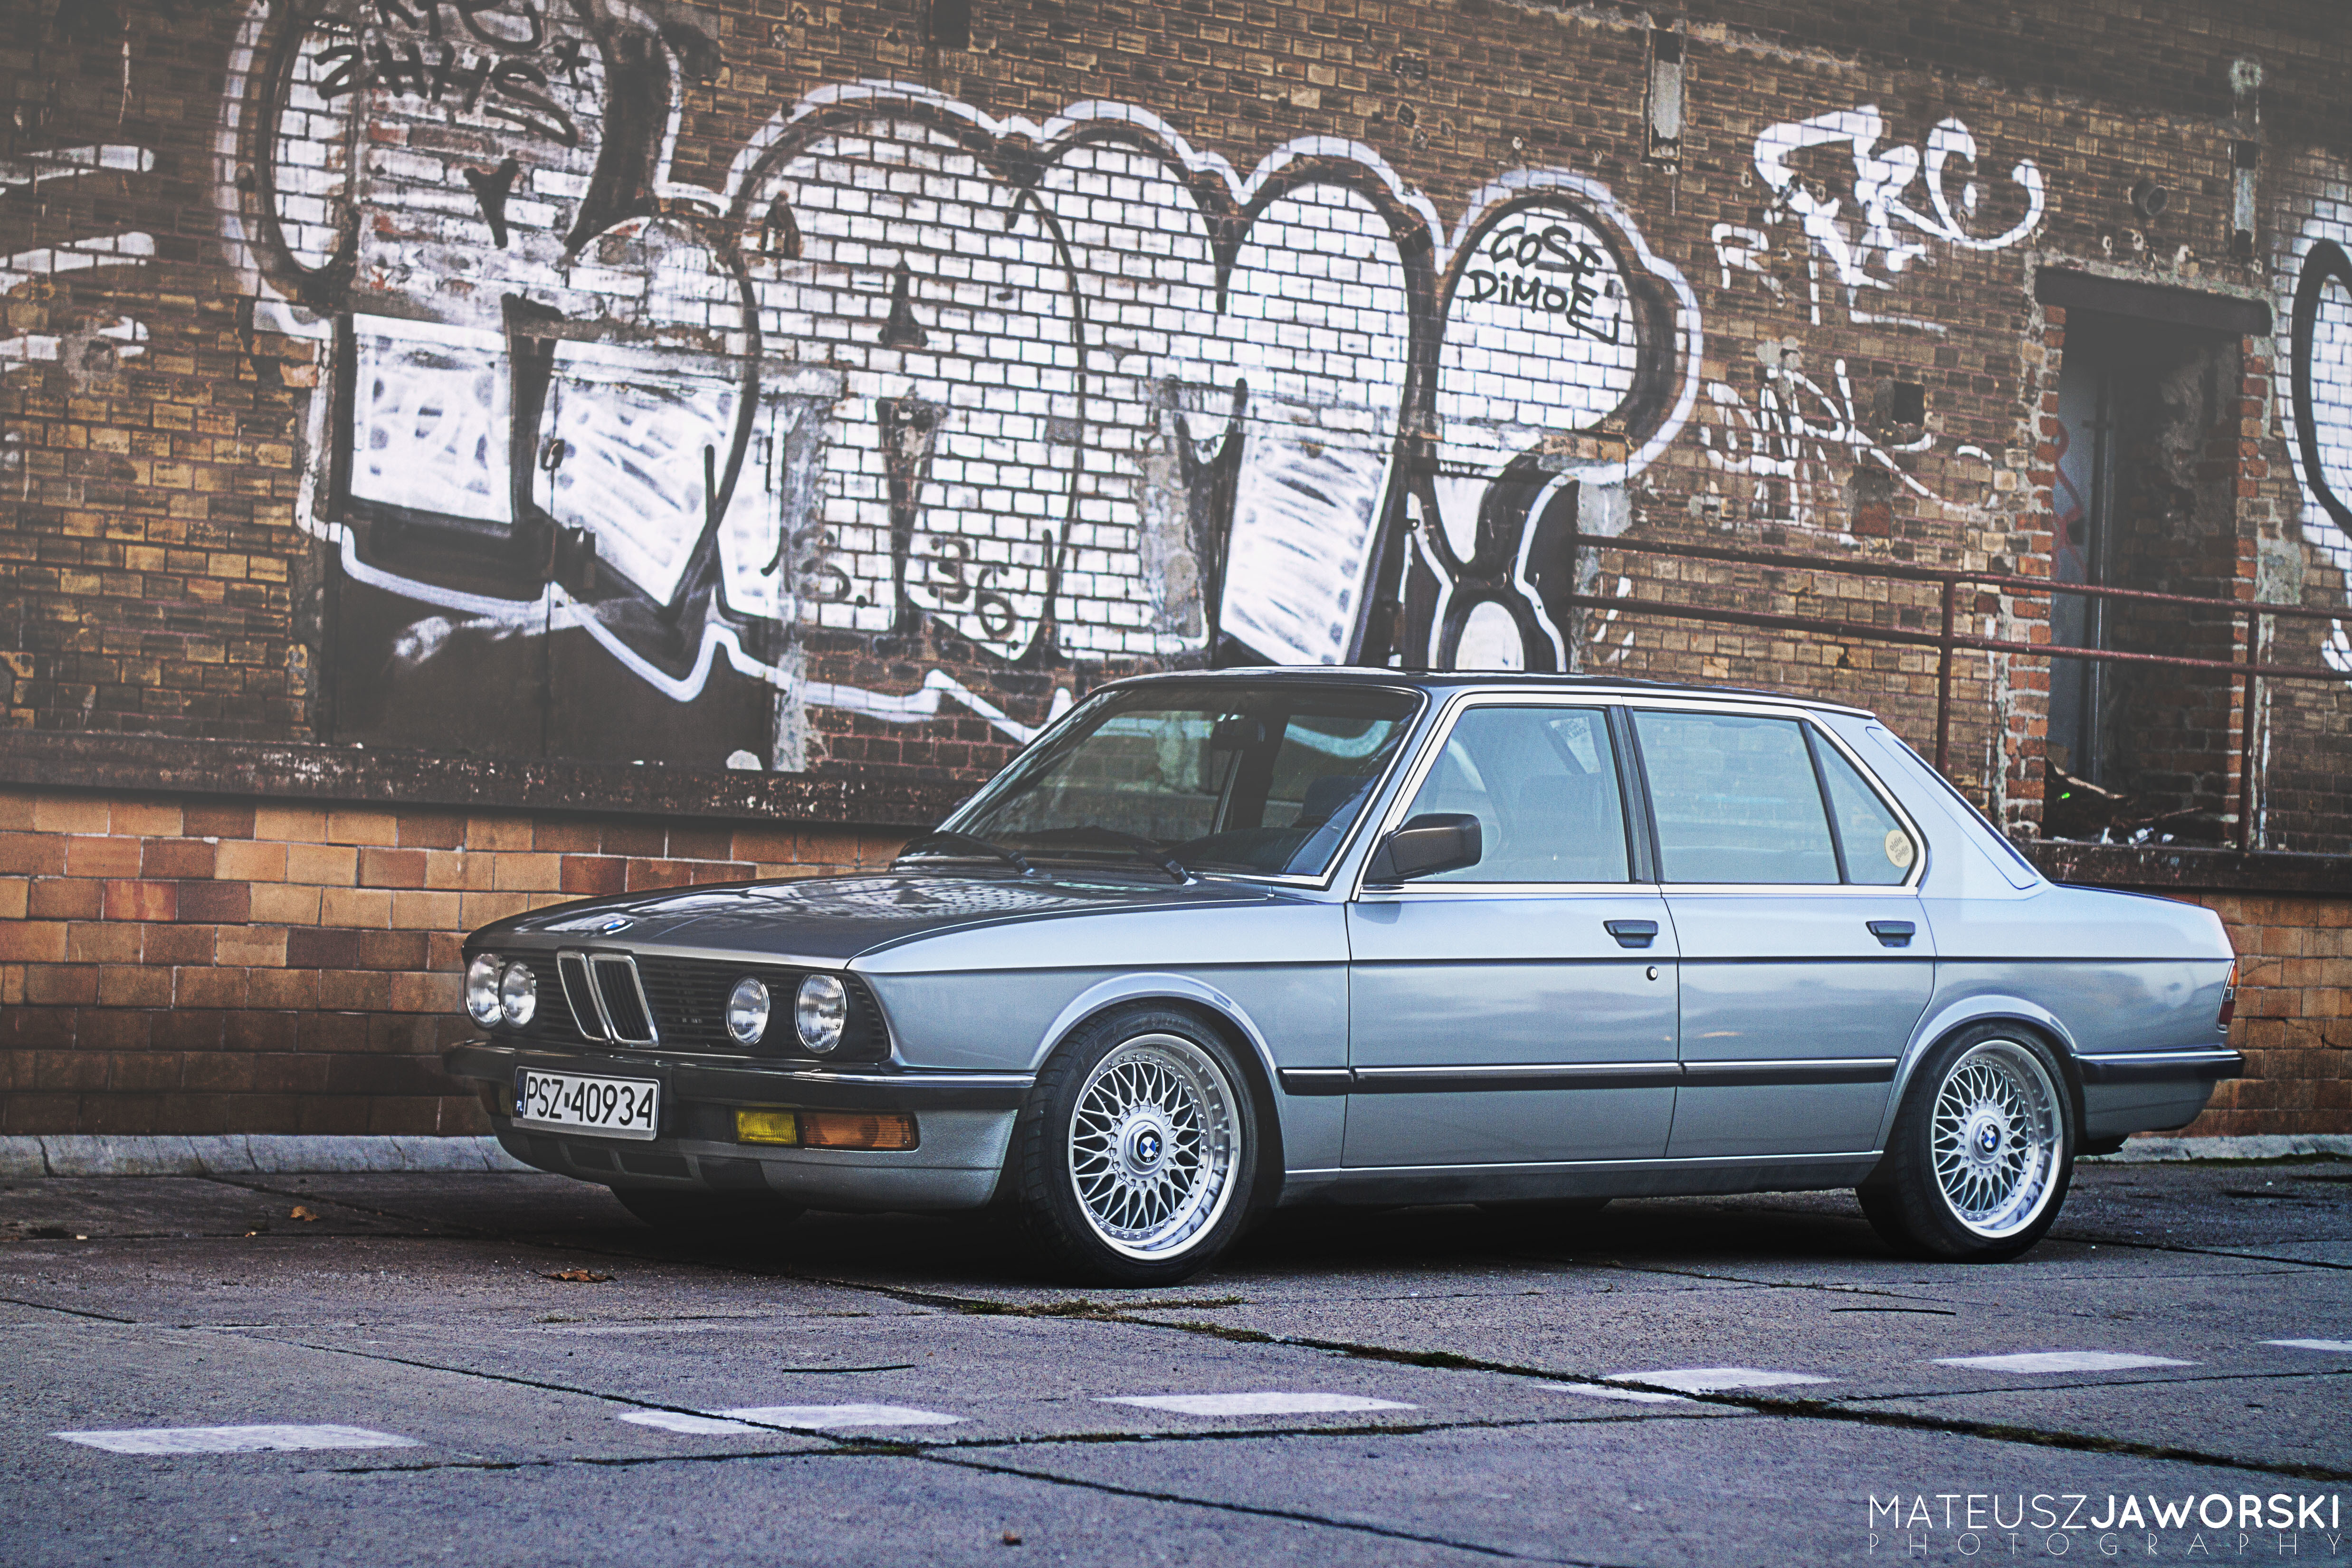 Download Wallpaper Bmw 5 Series Bbs Stance E28 Section In Save It